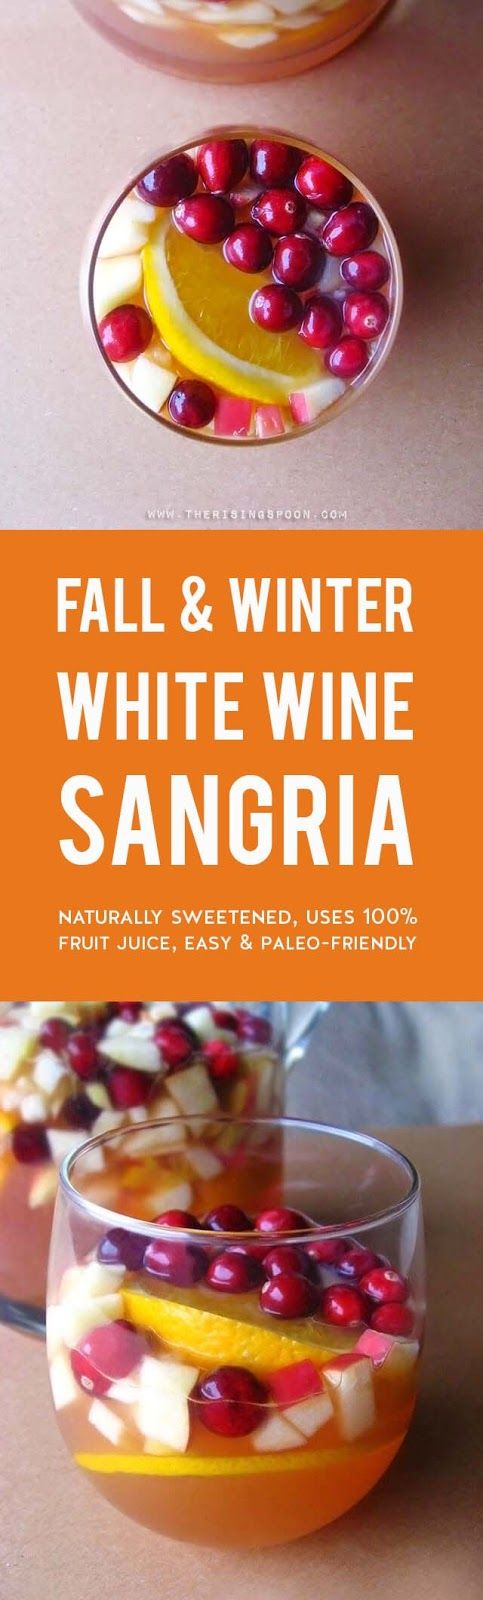 An easy white wine sangria recipe featuring gorgeous fall and winter ingredients like cranberries, apples, and oranges. This drink is refreshing, not too sweet, and even slightly healthy with the addition of 100% unsweetened cranberry juice. It's elegant enough to serve at a holiday gathering, yet simple enough for a low-key weeknight dinner. (gluten-free & paleo) #sangria #fallrecipes #thanksgivingrecipes #whitewine #holidays #fallfood #christmasrecipes #healthyeating